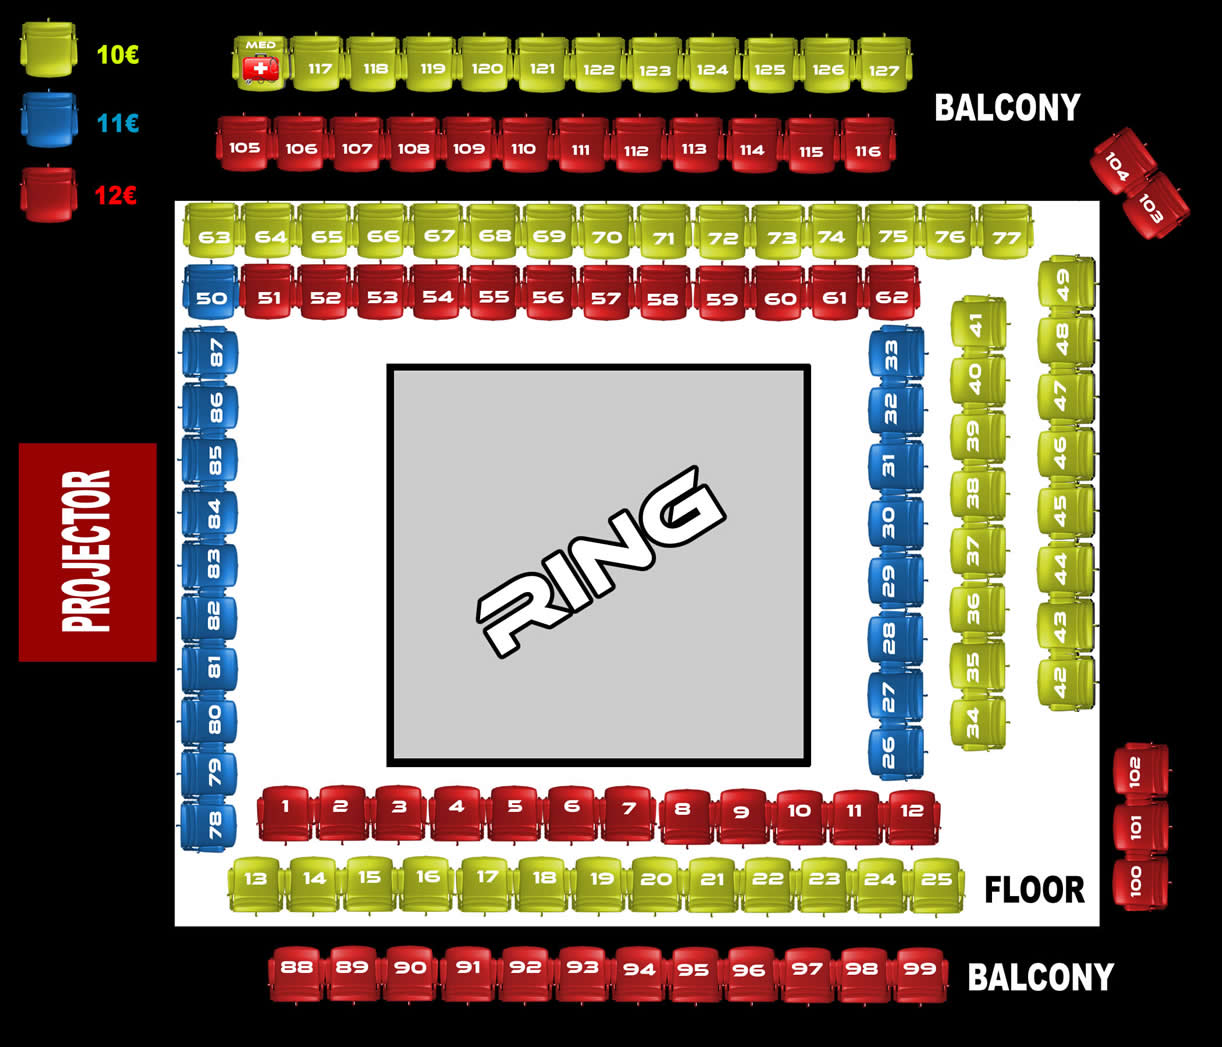 DUNGEONS seats and tickets